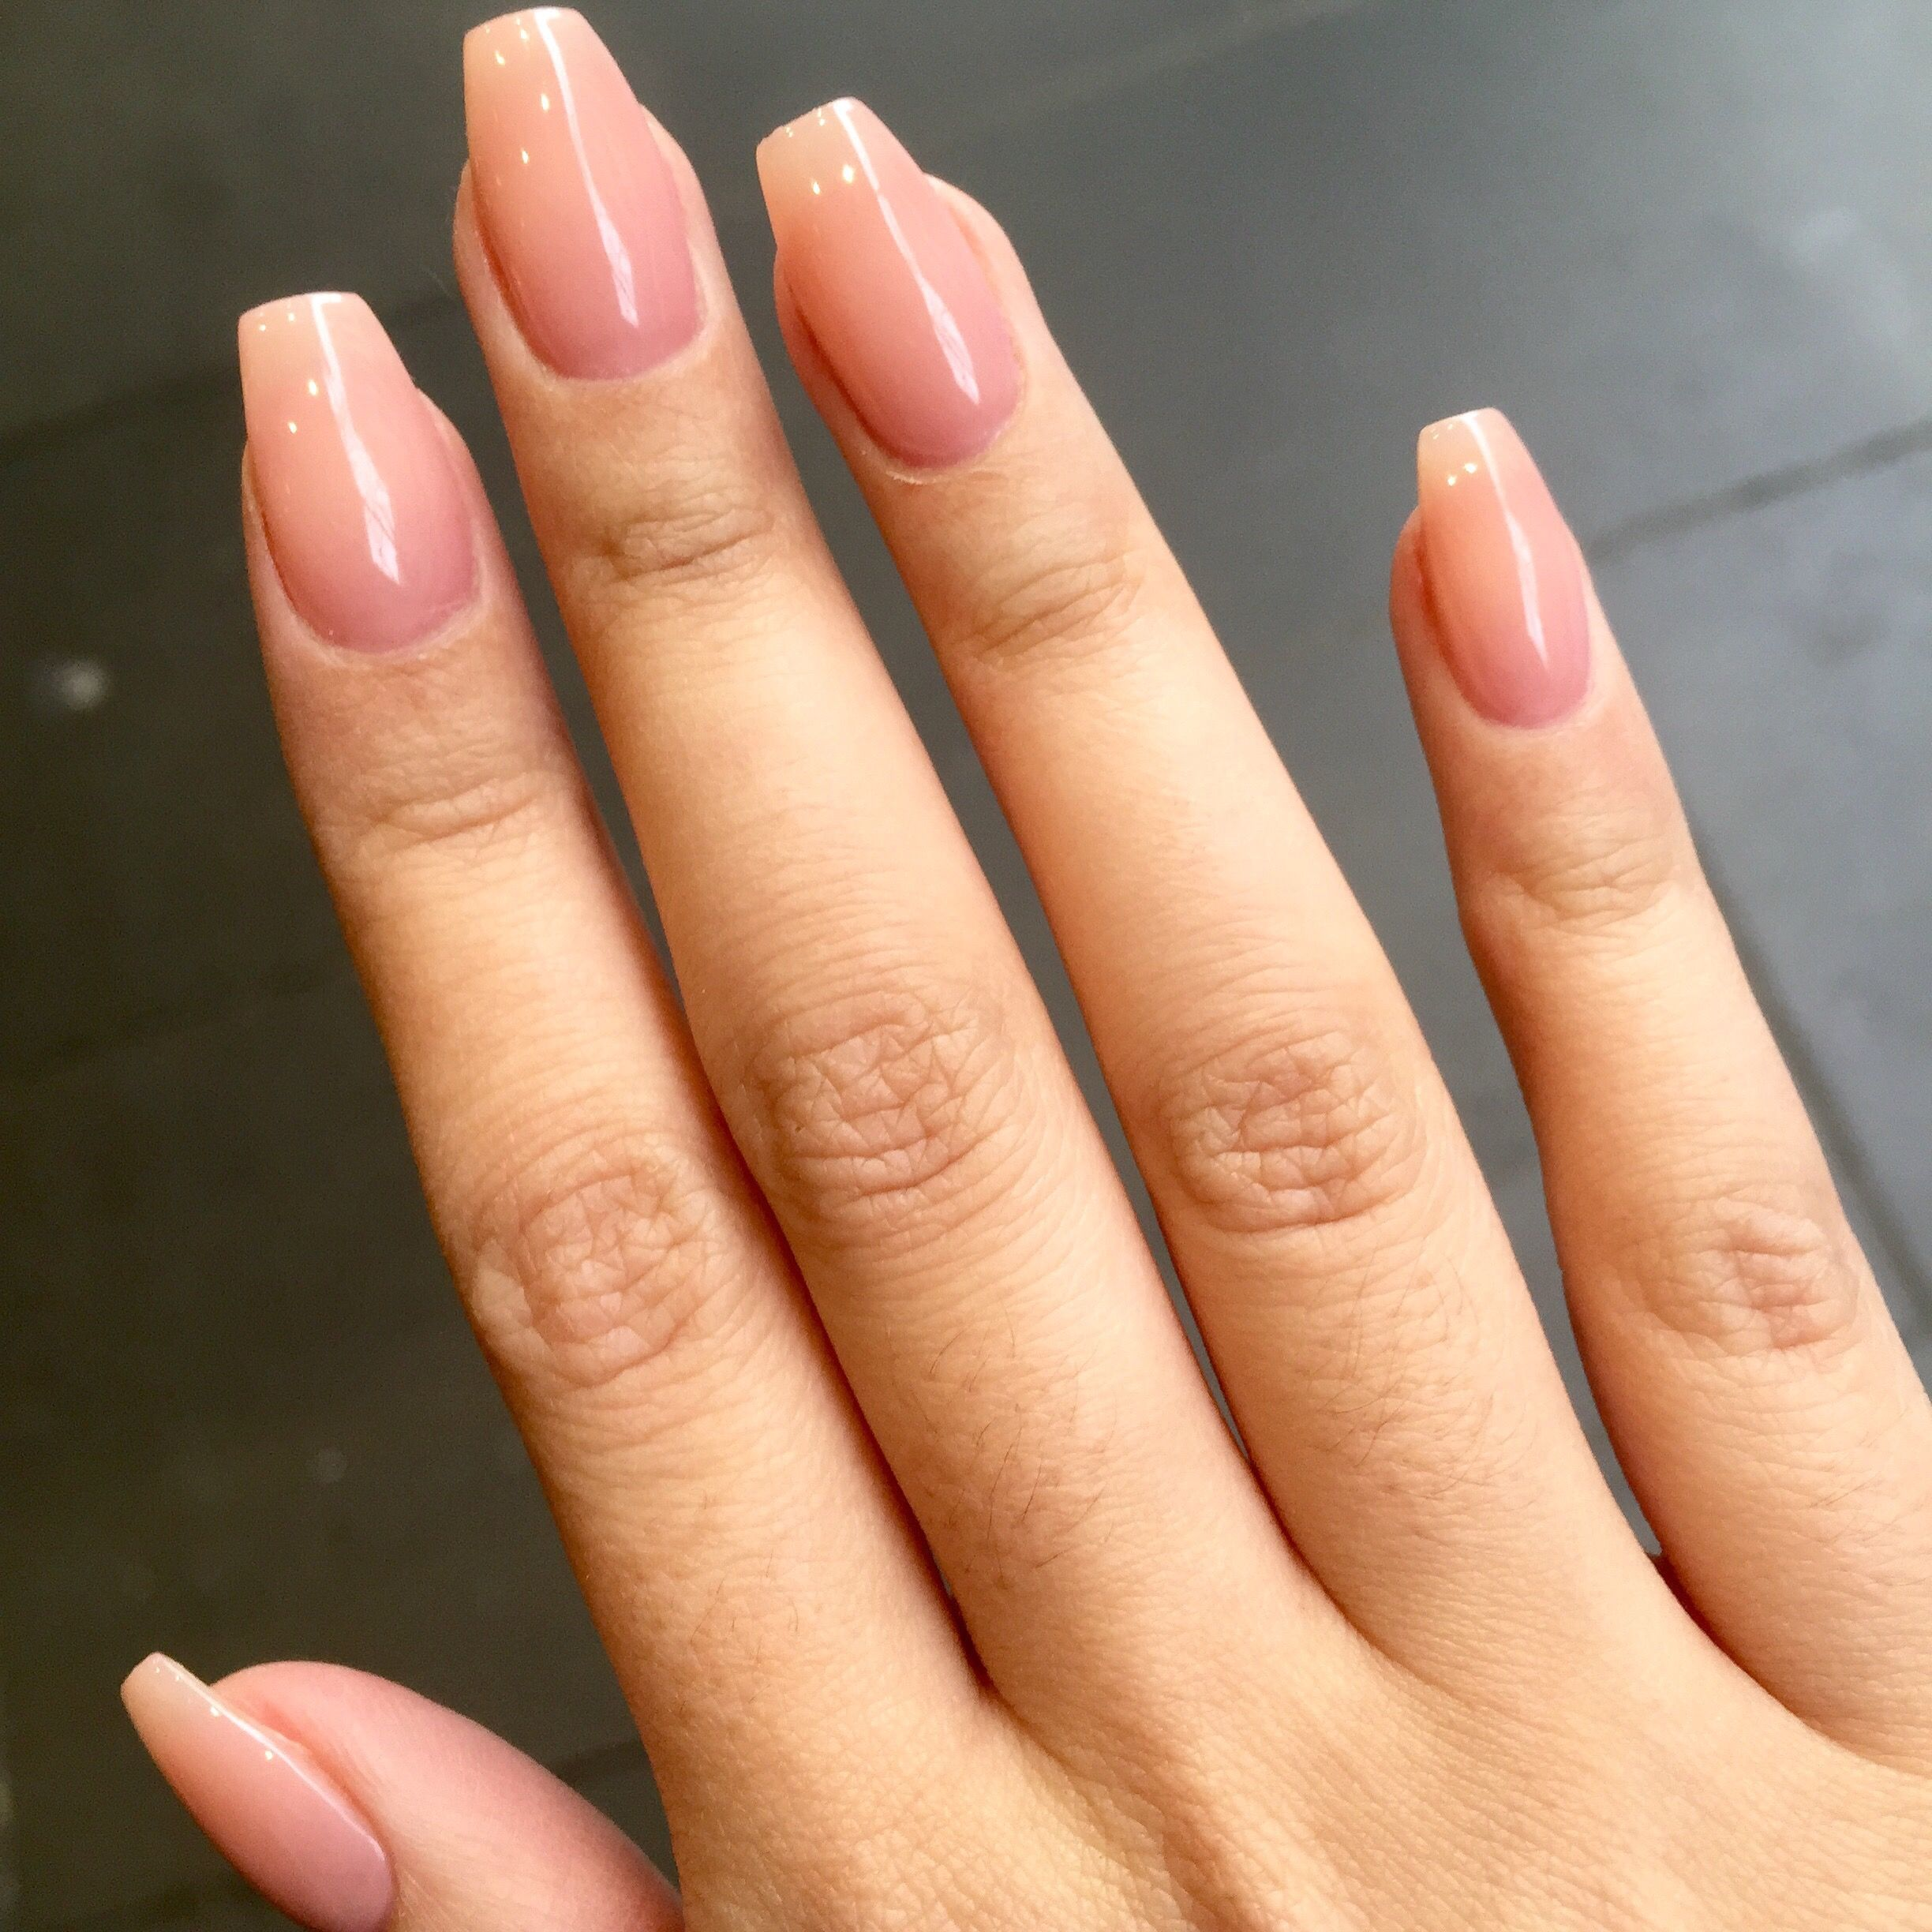 ballerina nail shape - Google Search | Ballerina/Coffin Nails ...